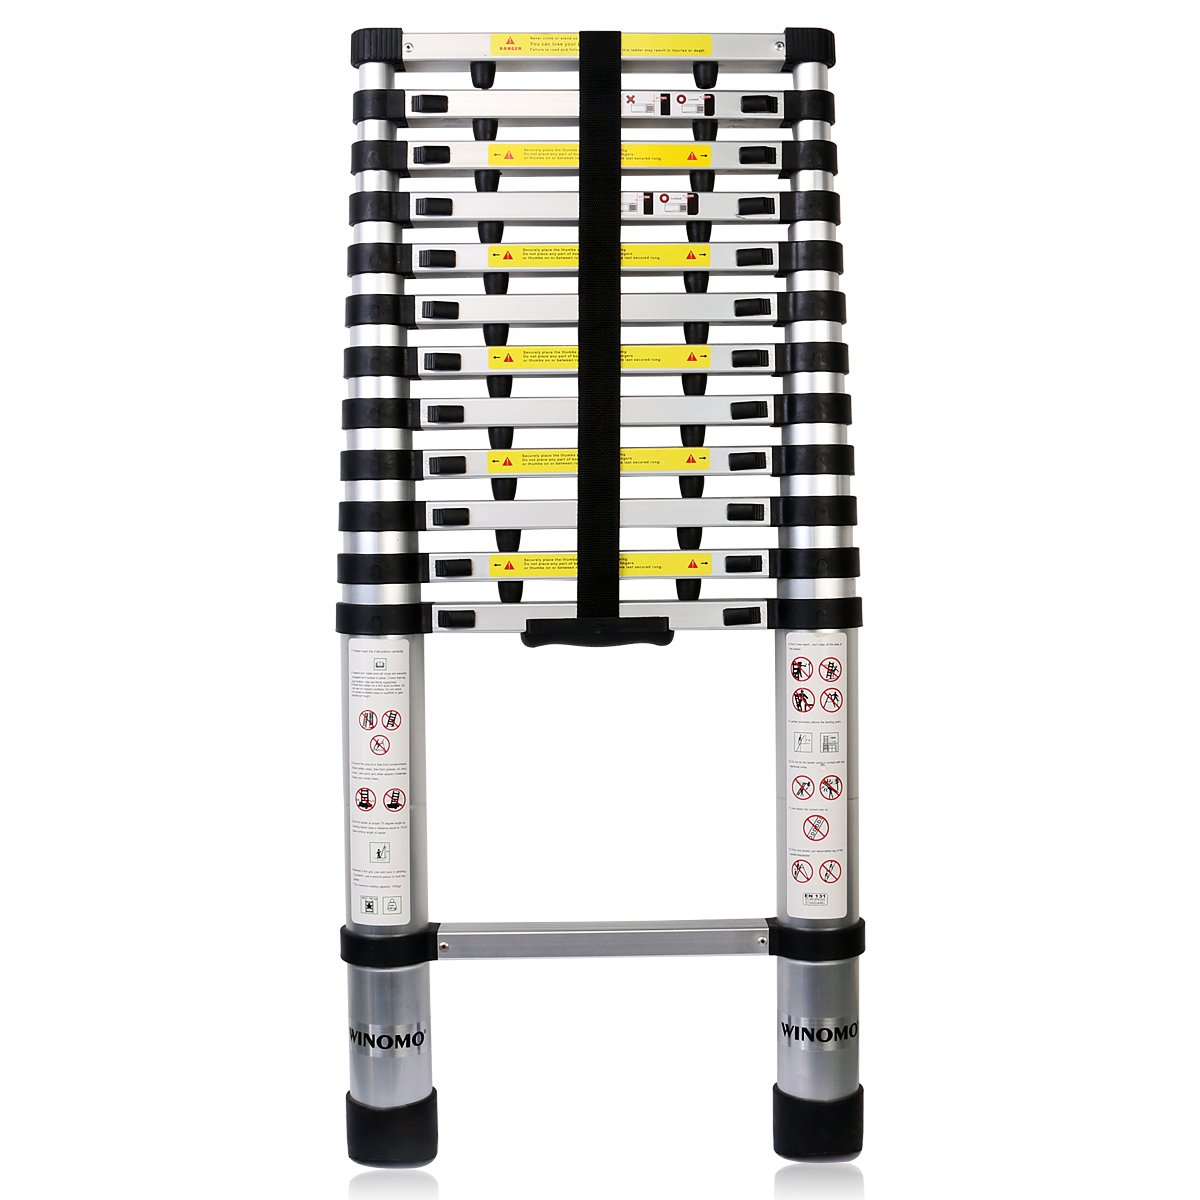 WINOMO Aluminum Telescoping Ladder Folding Extension Ladder Length up to 12.5 Feet by WINOMO